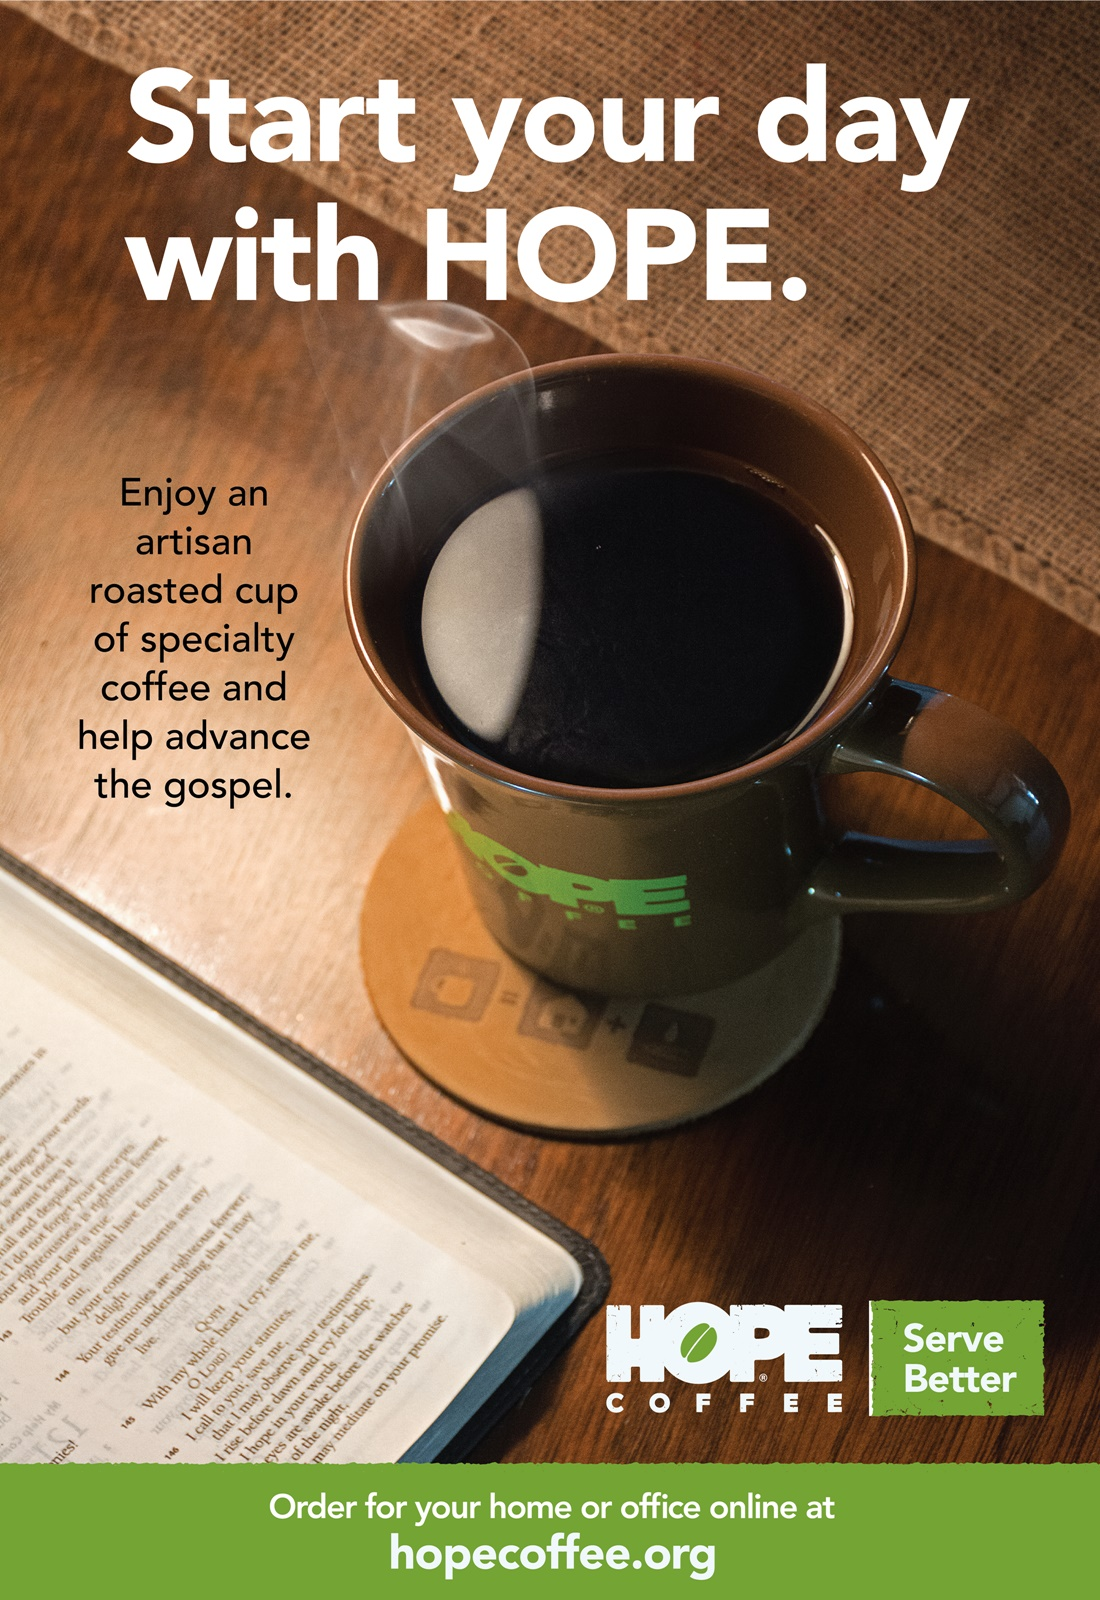 HOPE Coffee - Start your day with HOPE - Missional Coffee that shares the gospel